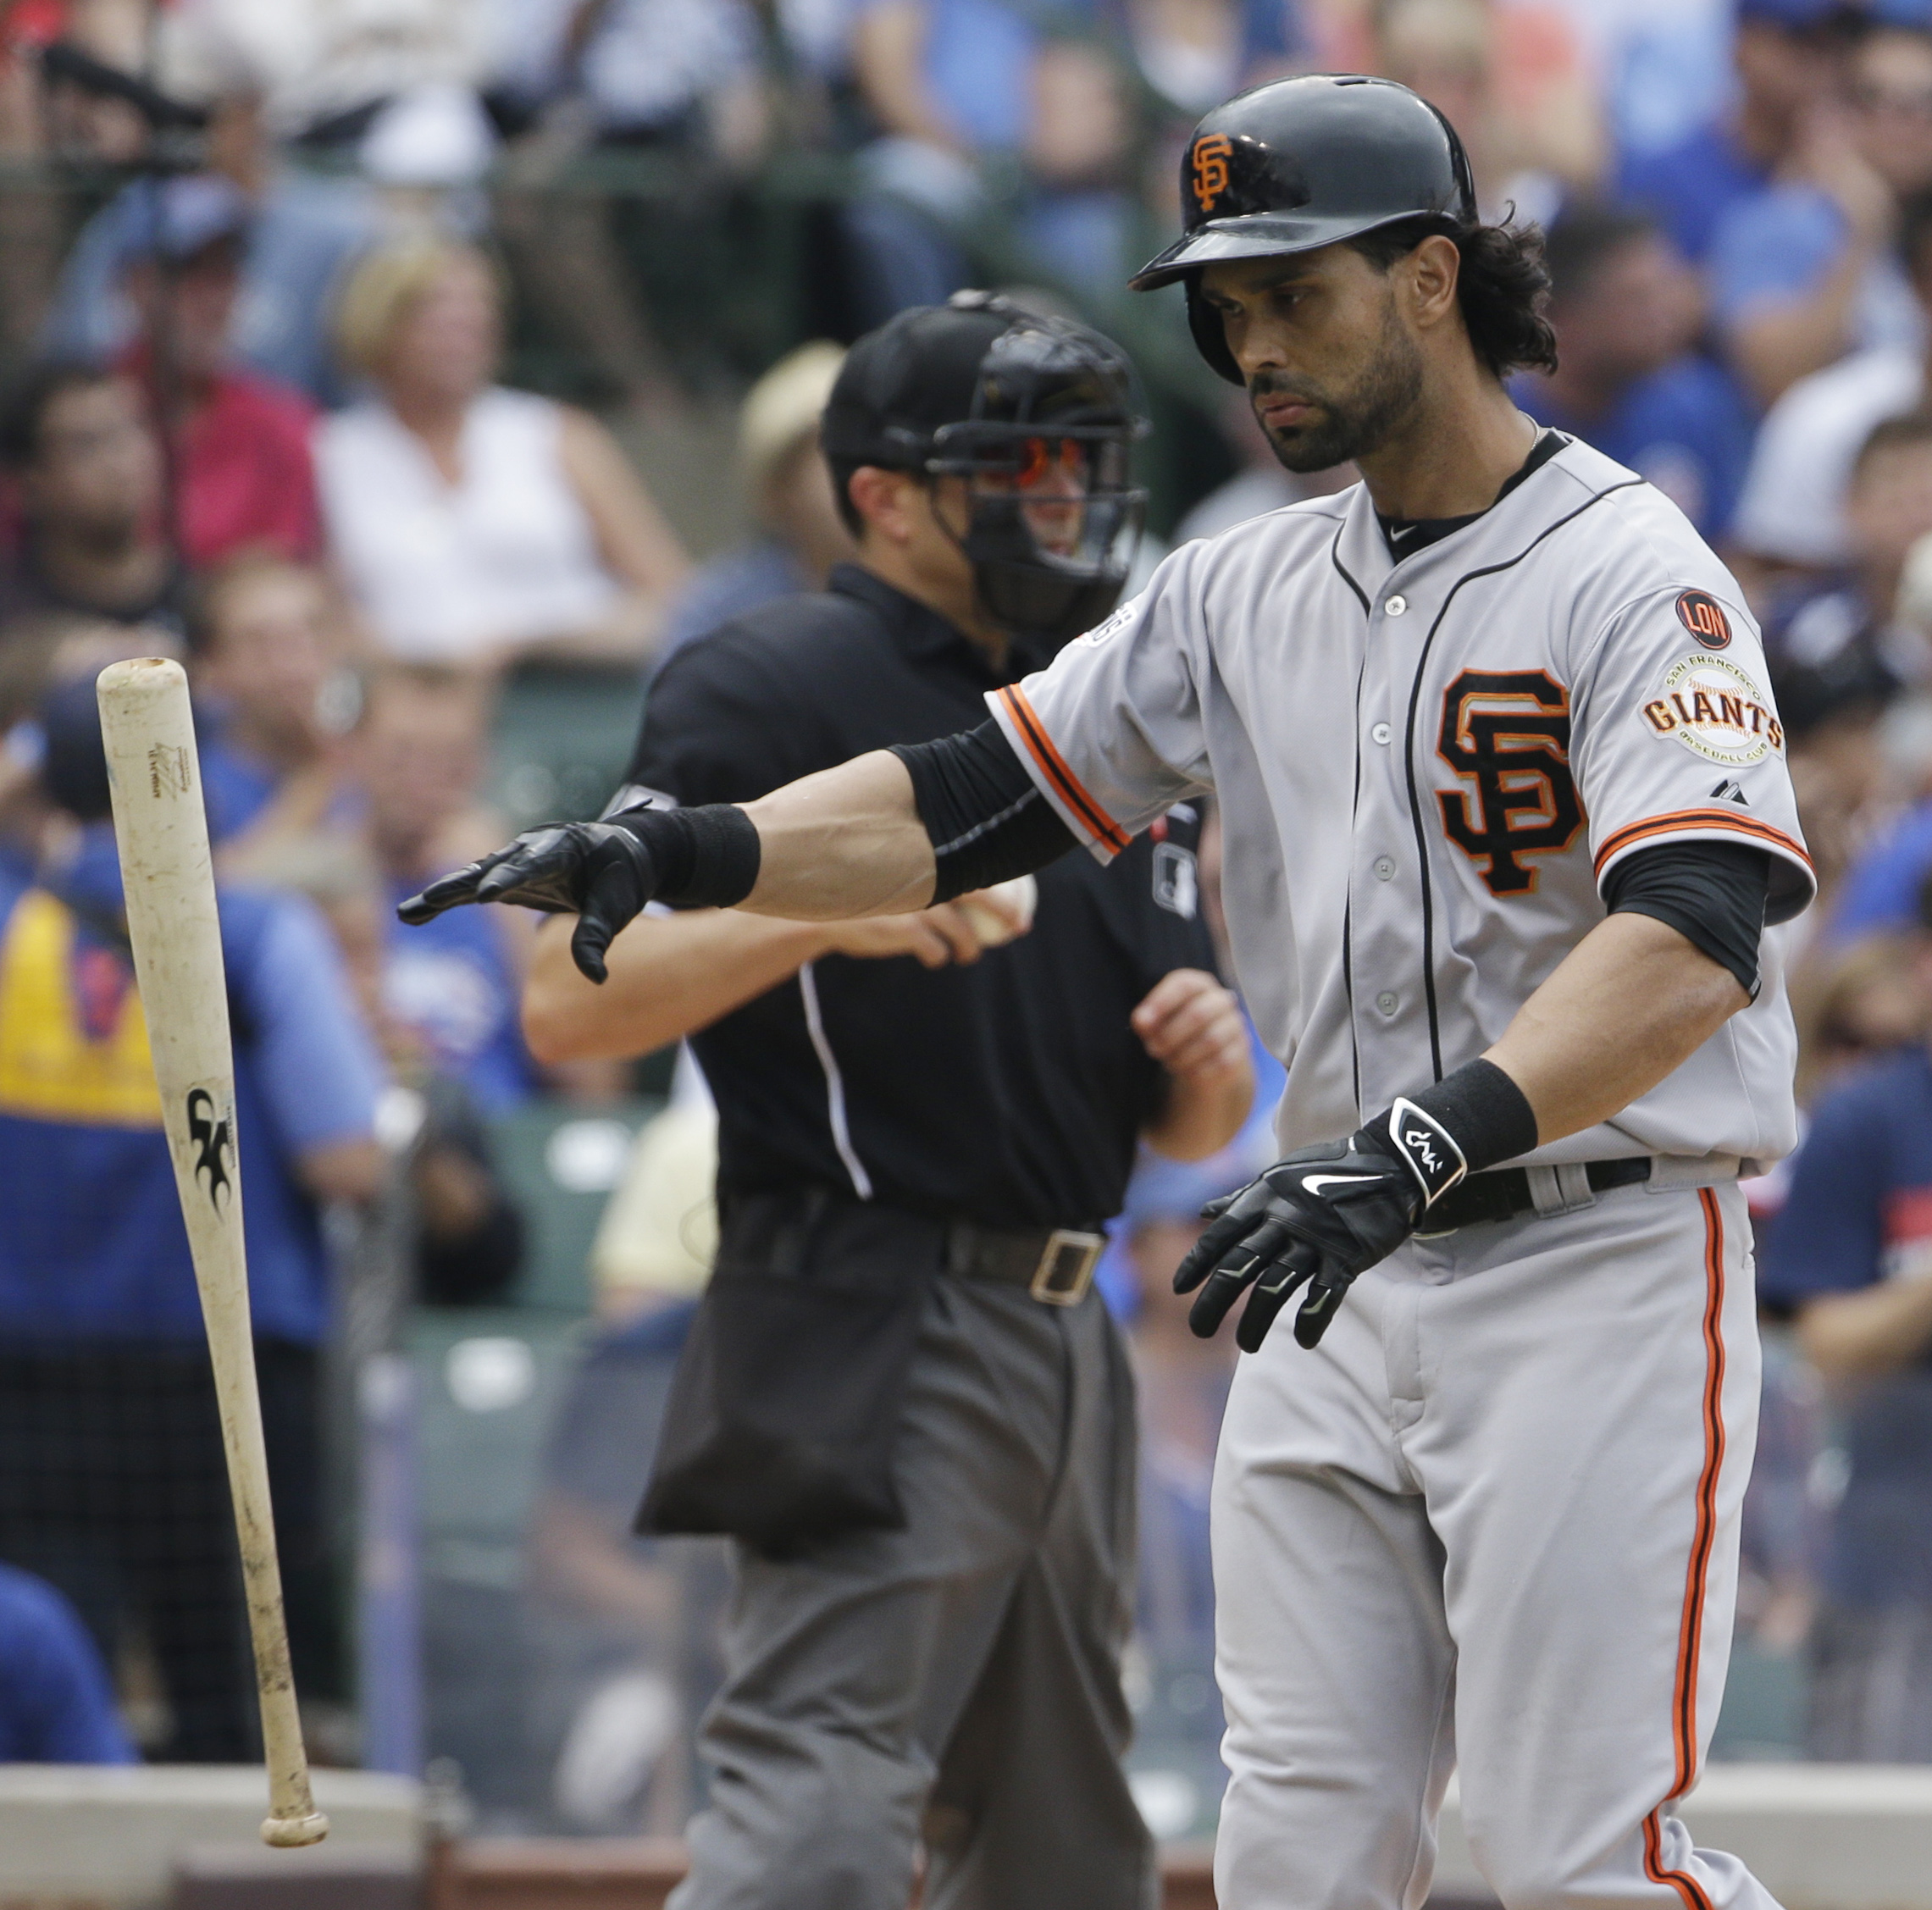 San Francisco Giants' Angel Pagan throws his bat after striking out swinging against the Chicago Cubs during the fifth inning of a baseball game, Sunday, Aug. 9, 2015, in Chicago. (AP Photo/Nam Y. Huh)